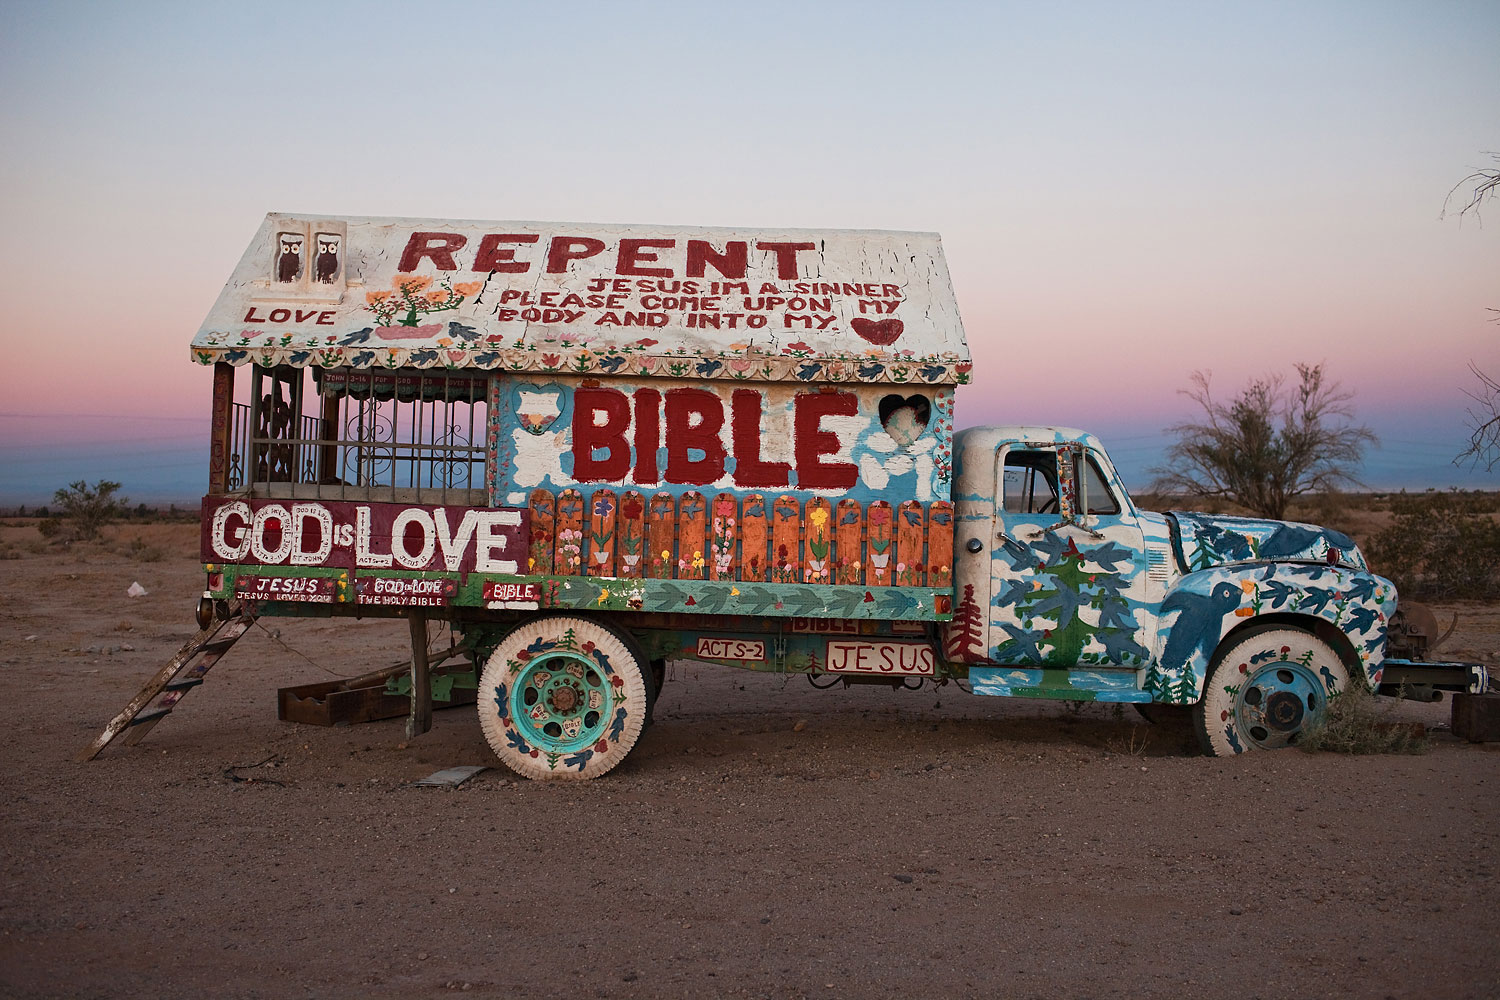 One of Knight's many art cars covered in scripture. He used to drive them in parades in the valley.